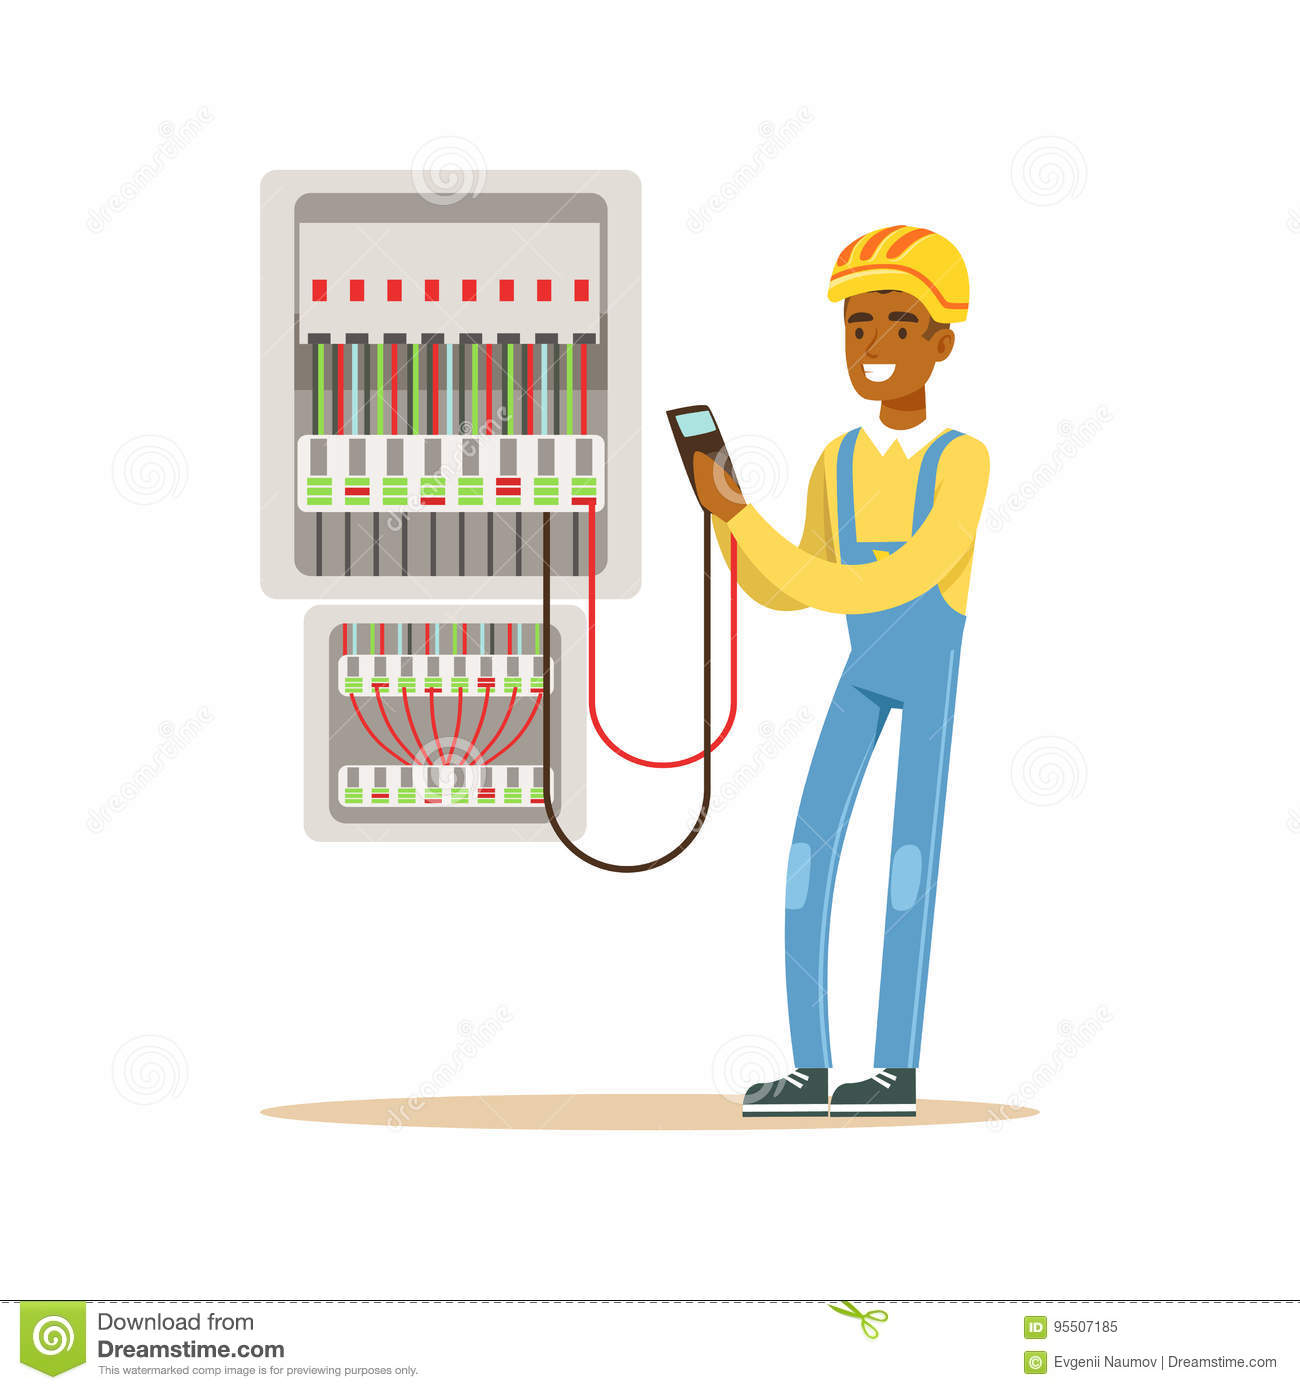 fuse box cartoon best wiring library 97 F150 Fuse Diagram electrician engineer measuring the voltage output in fuse box, electric man performing electrical works vector